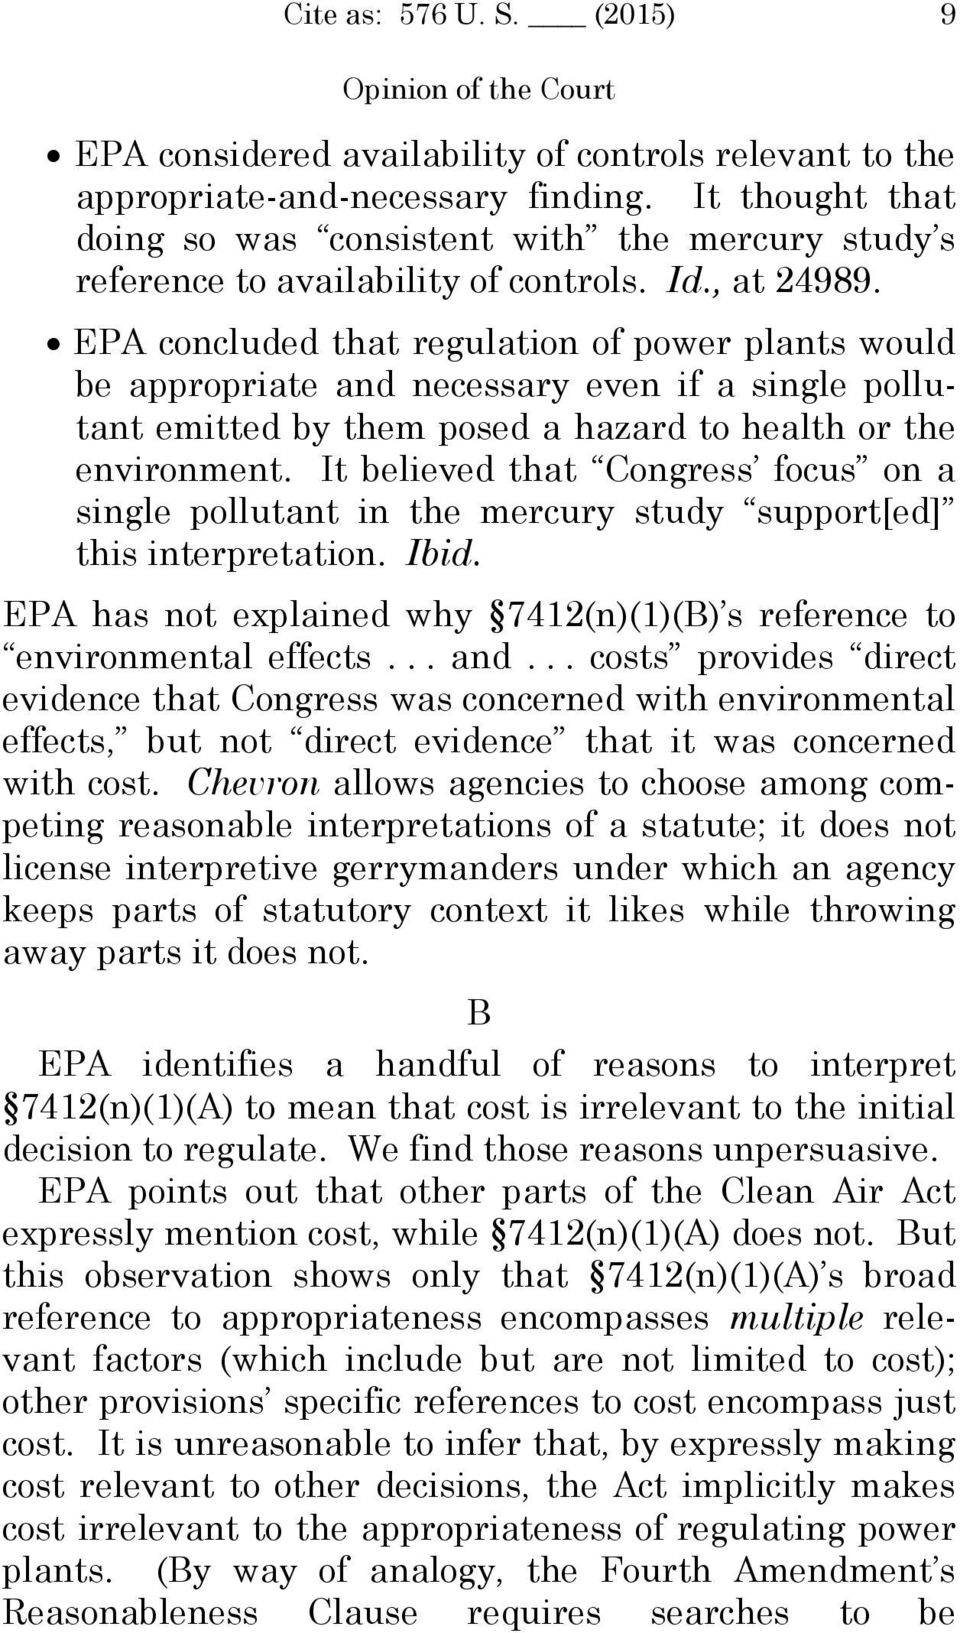 EPA concluded that regulation of power plants would be appropriate and necessary even if a single pollutant emitted by them posed a hazard to health or the environment.